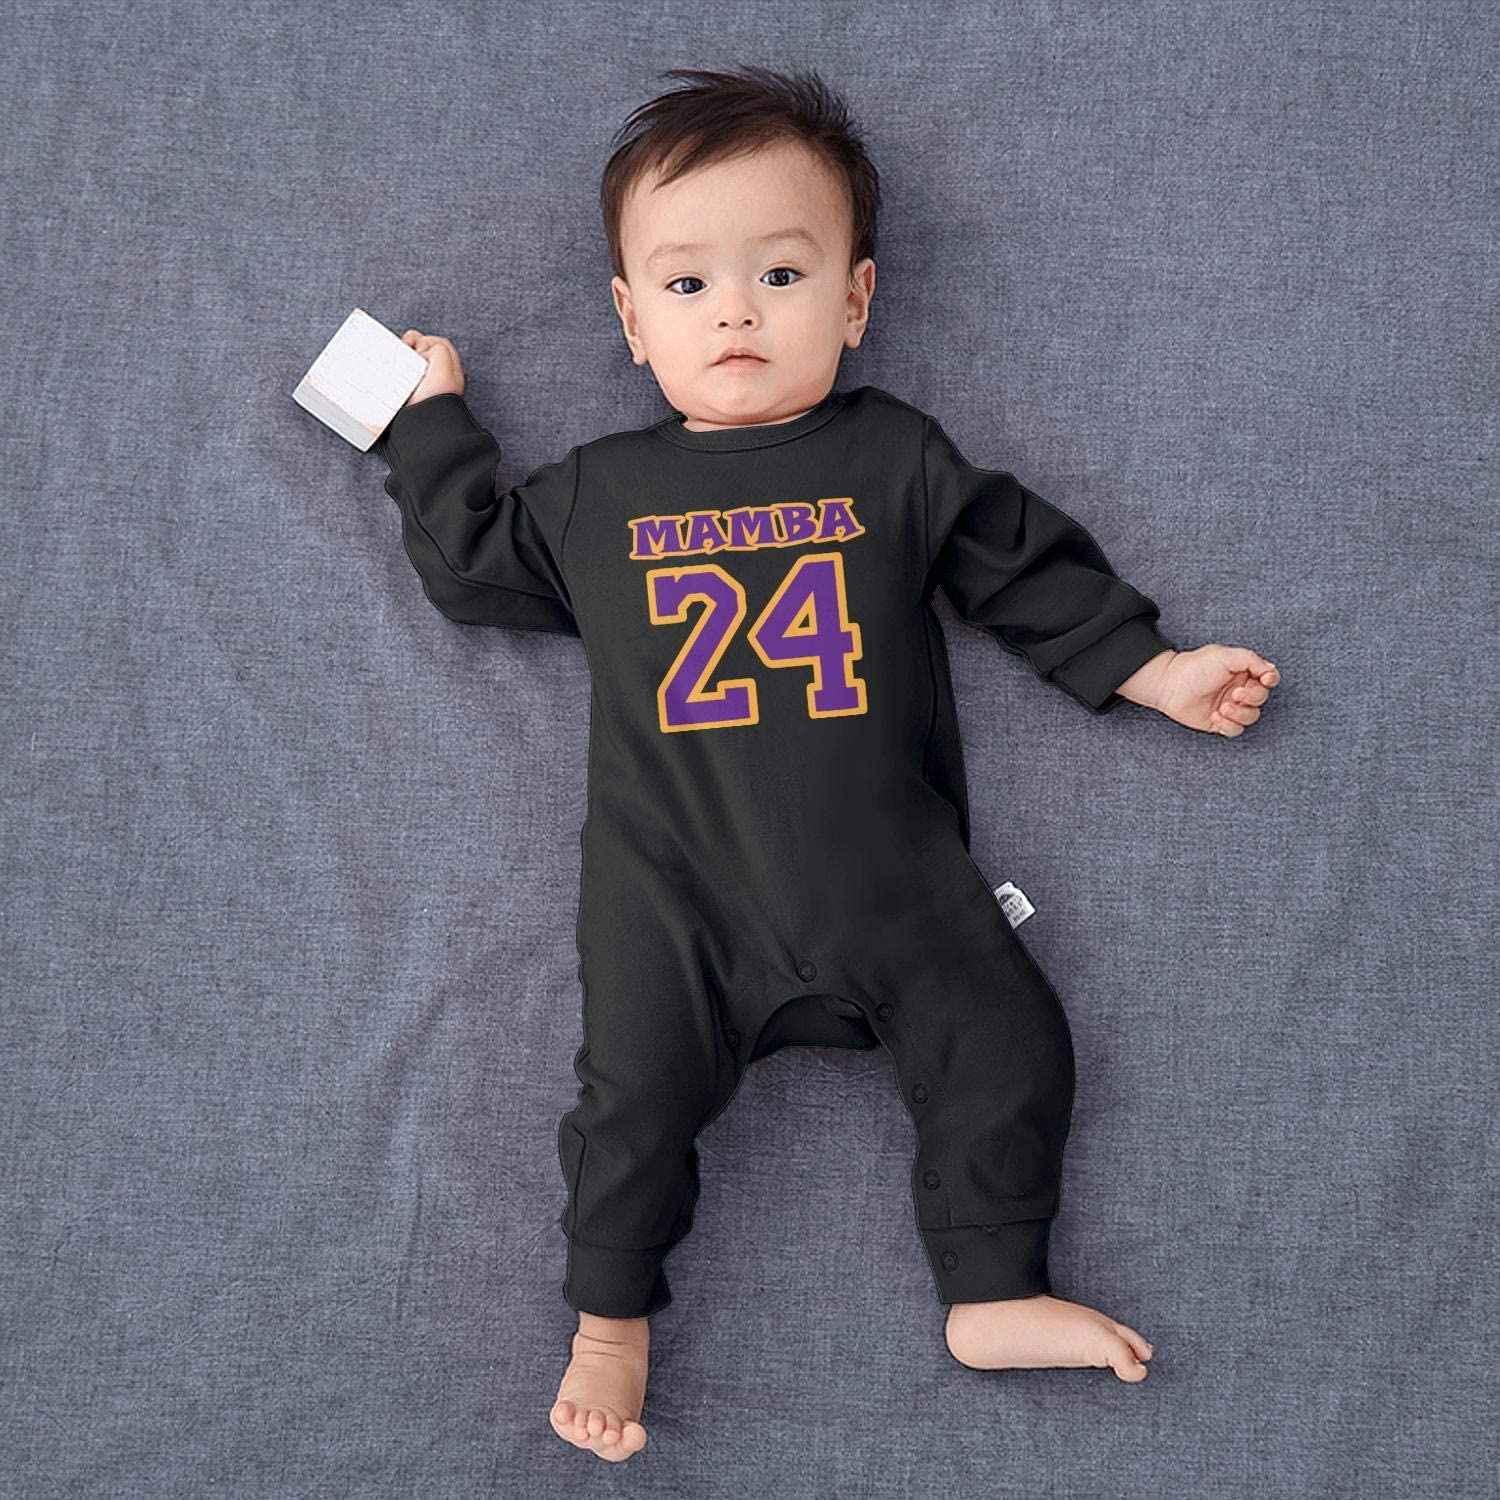 Unicorns Farting Mamba-24-Players-Basketball-Legends Toddler Cotton Romper Print Long Sleeve Bodysuits